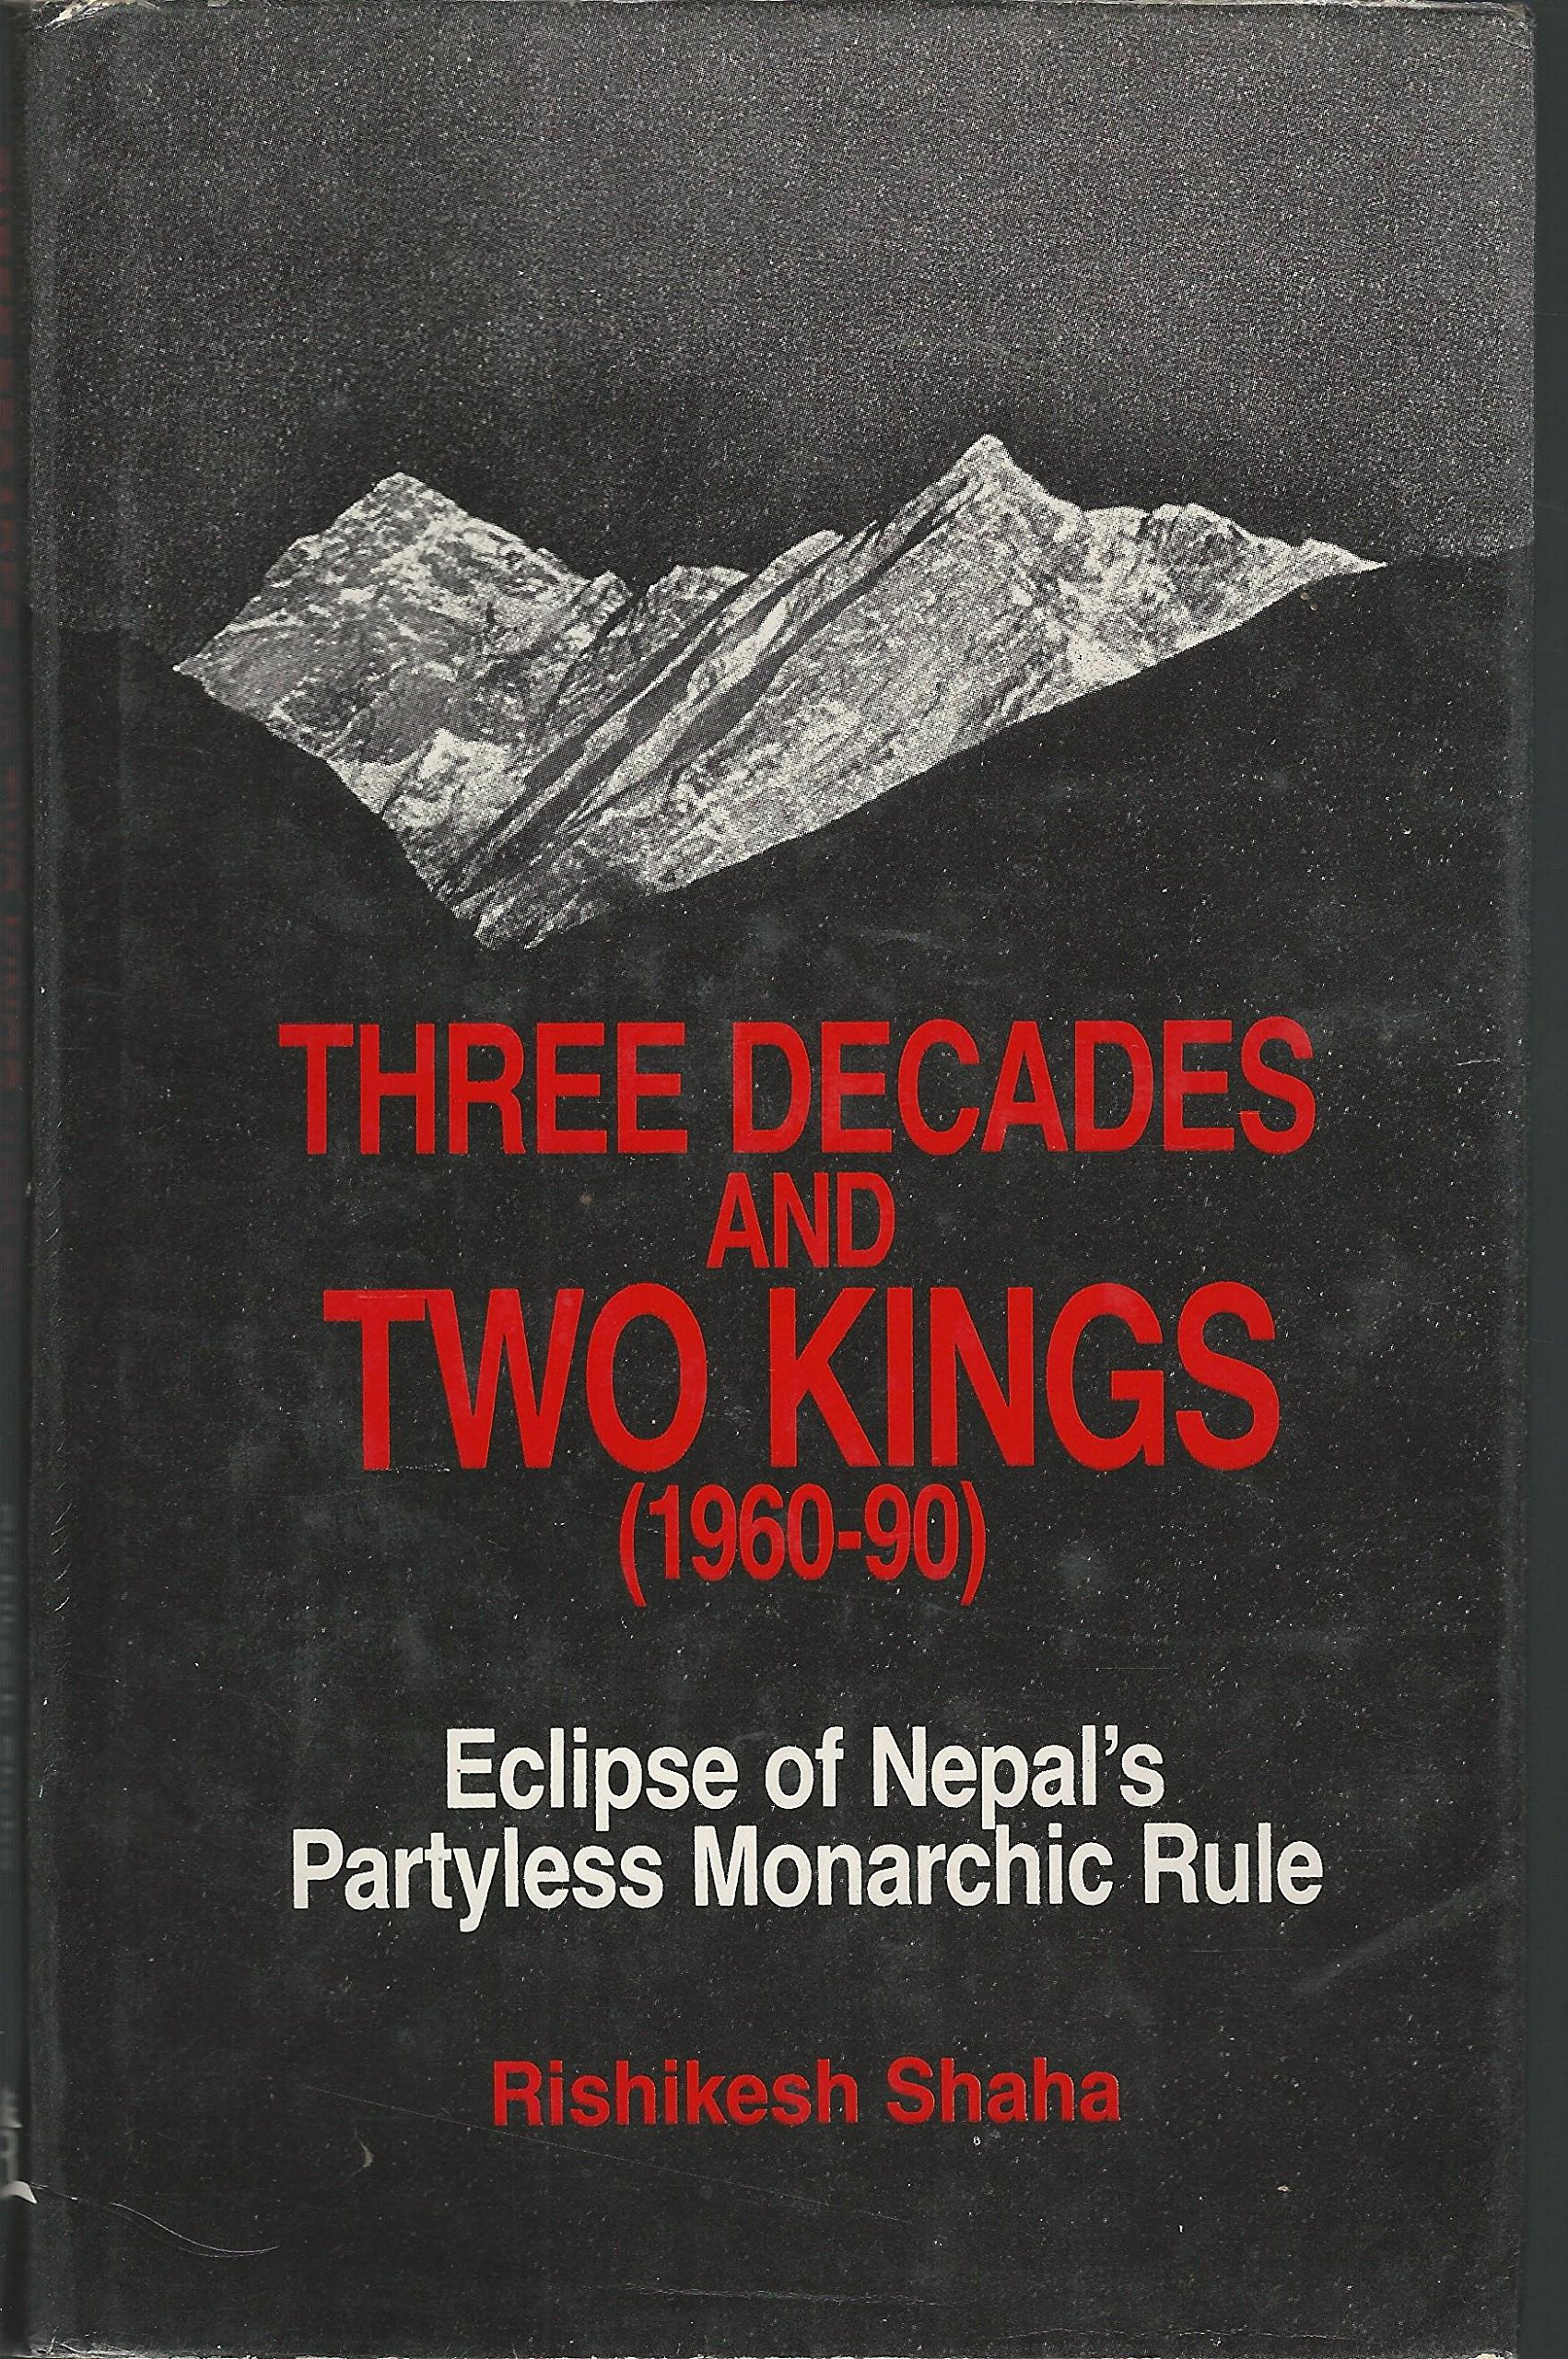 Book Cover Design Rule Of Three ~ Three decades and two kings  eclipse of nepal s